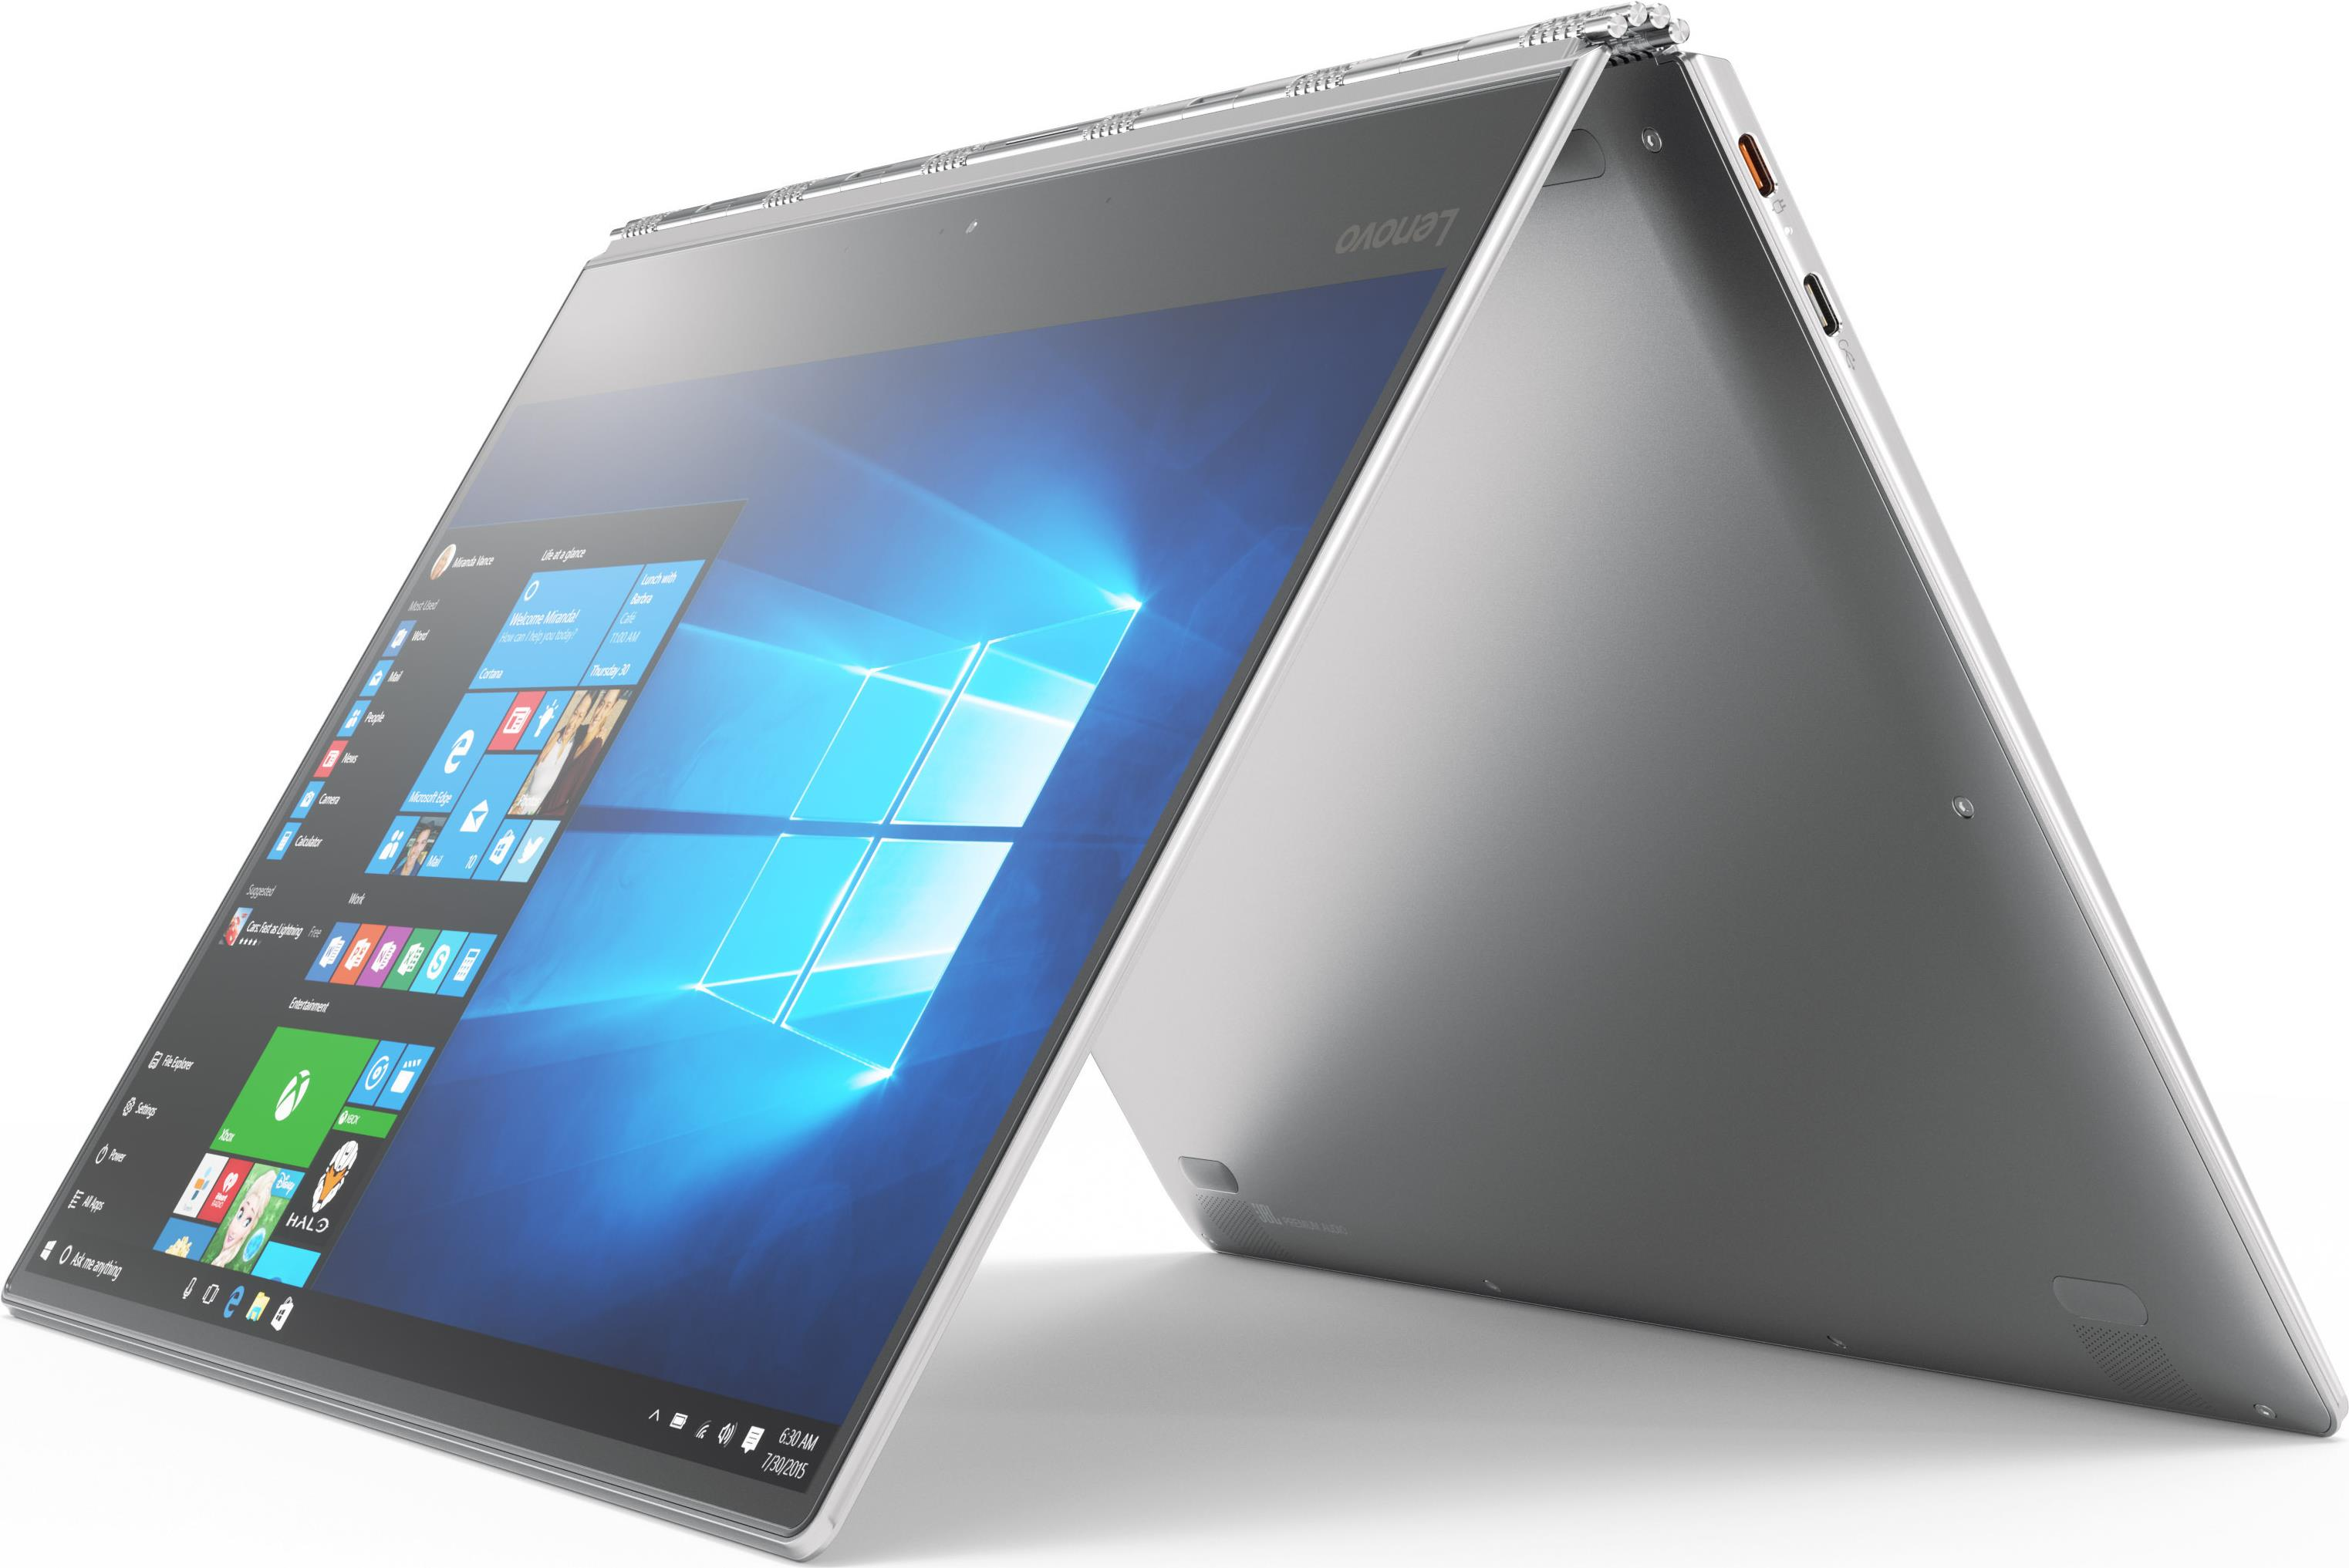 Lenovo Yoga 920 13IKB 80Y7 Flip Design Core i7 8550U 1 8 GHz Win 10 Home 64 Bit 8 GB RAM